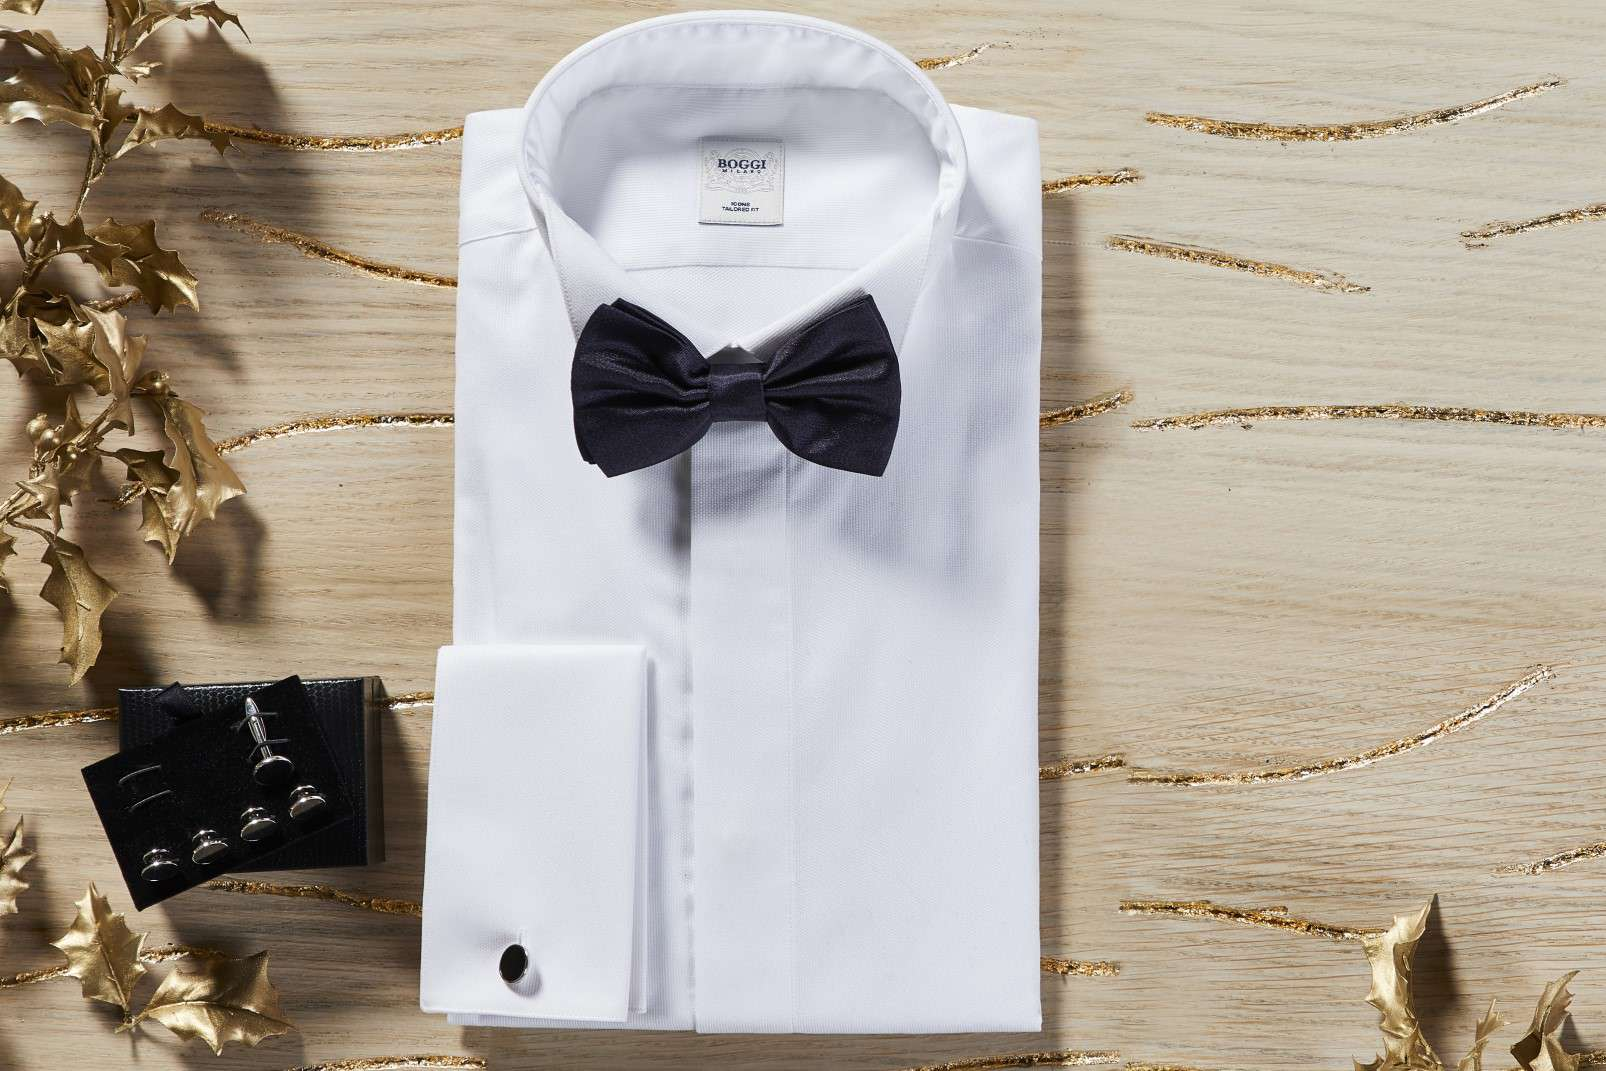 Boggi Milano gifts for a Gentleman - tuxedo shirt, black silk pre-tied bow tie, cufflinks